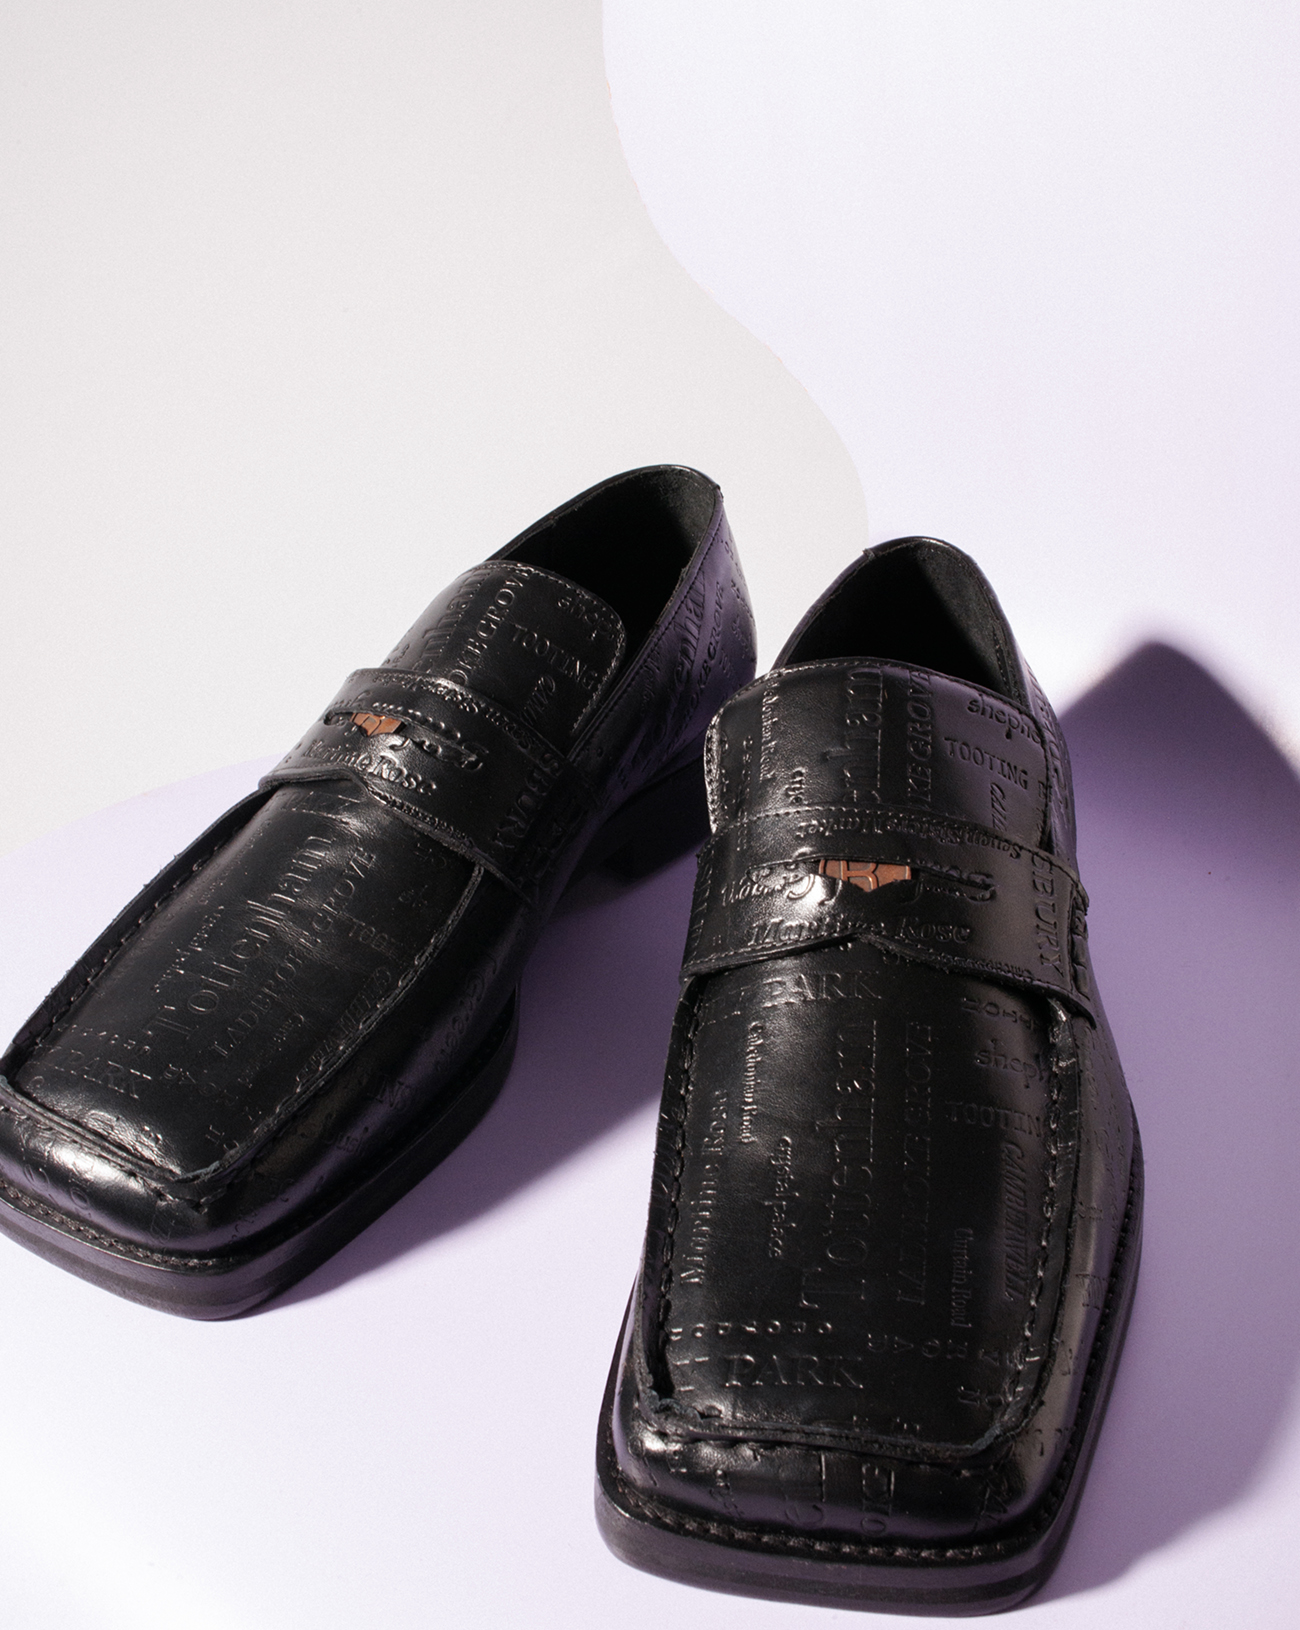 Original original martine rose loafers